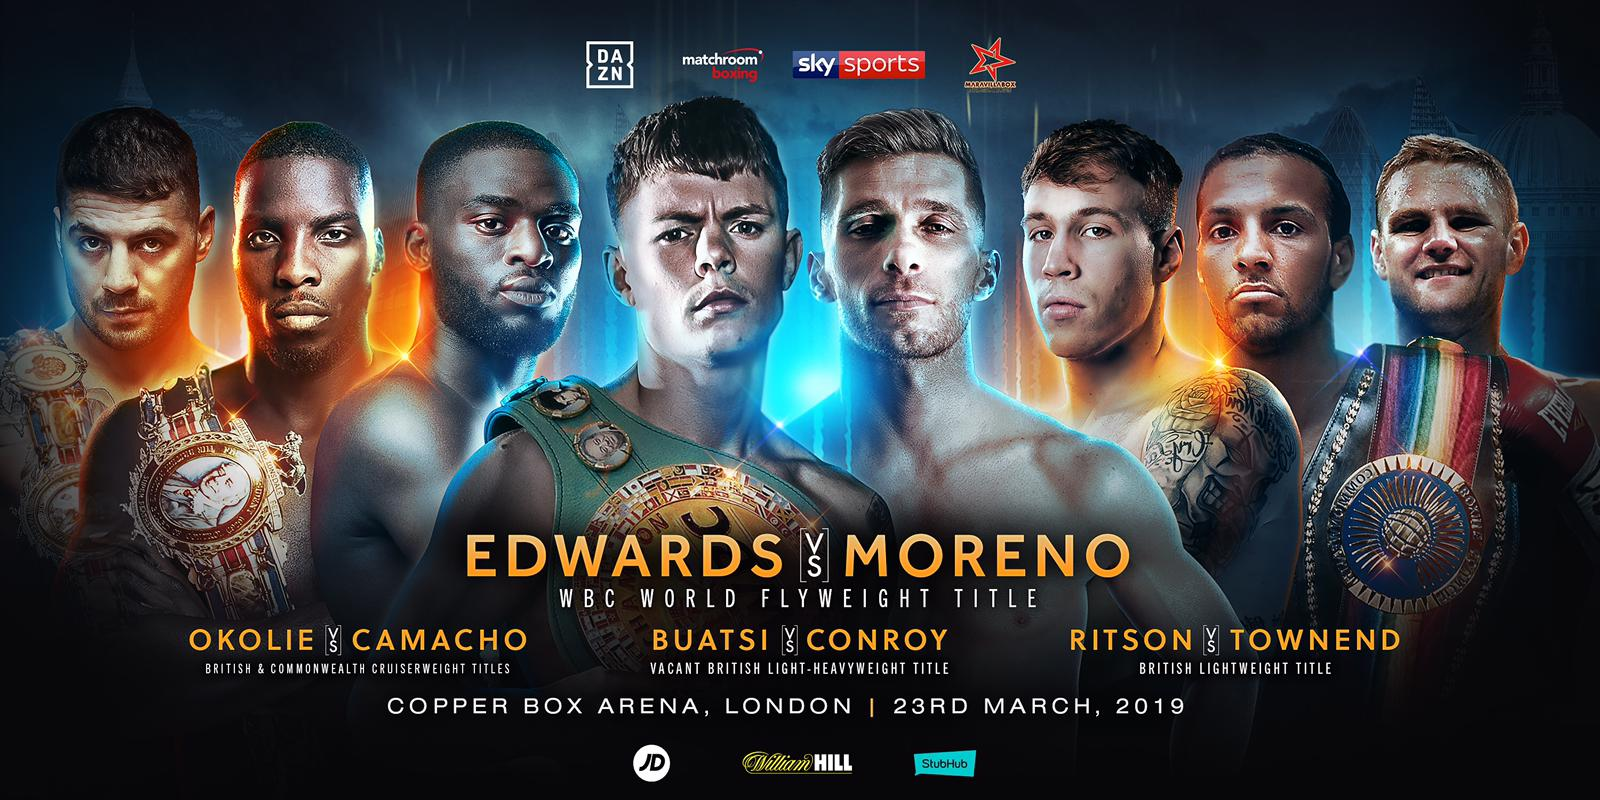 edwards-vs-moreno-poster